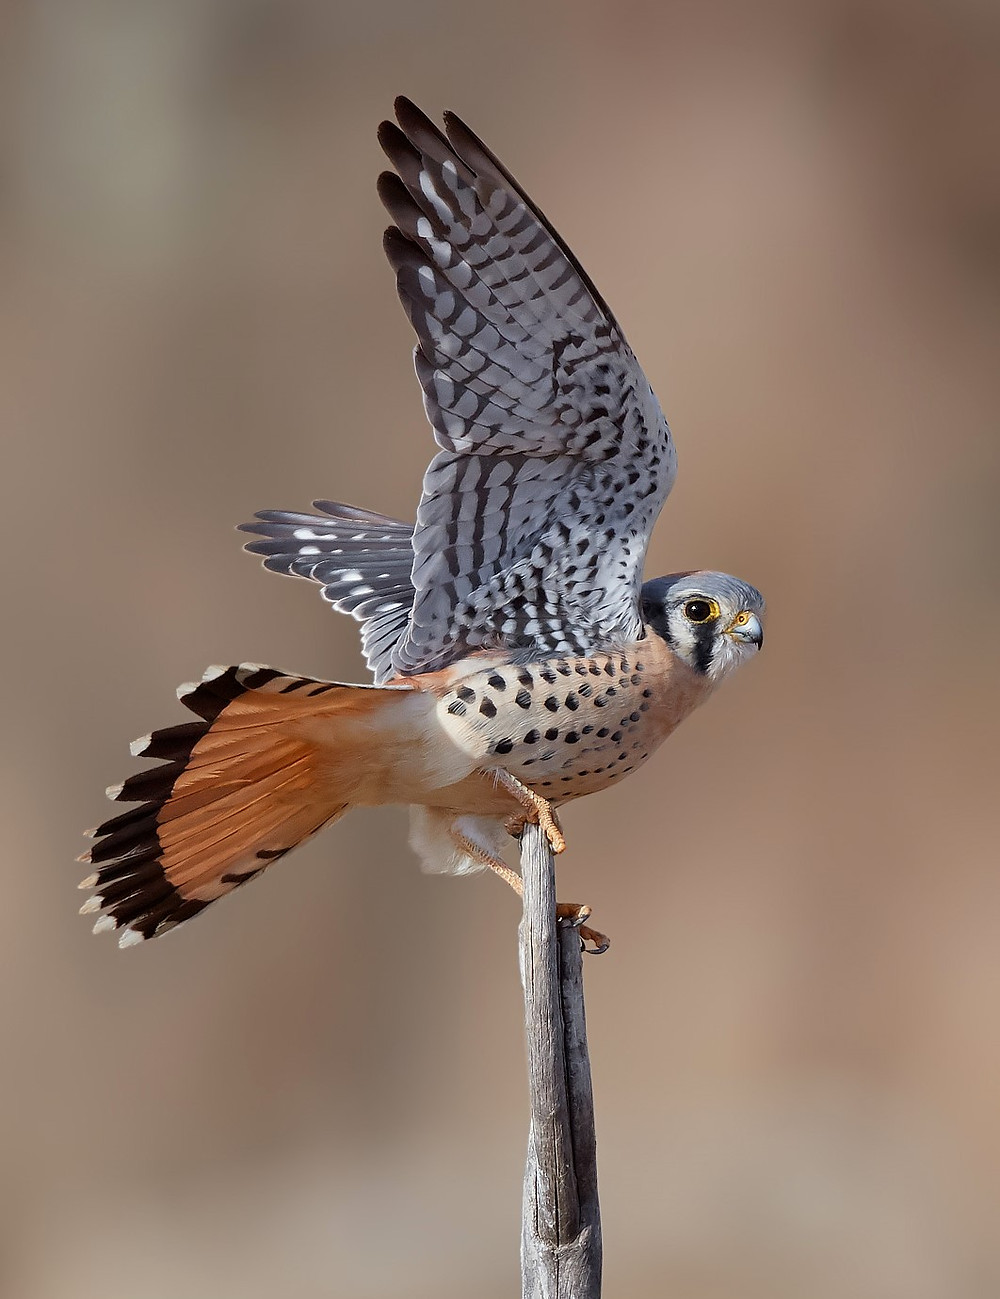 American Kestrel [Sparrowhawk] at Pelham Bay Park, Bronx in December 2018